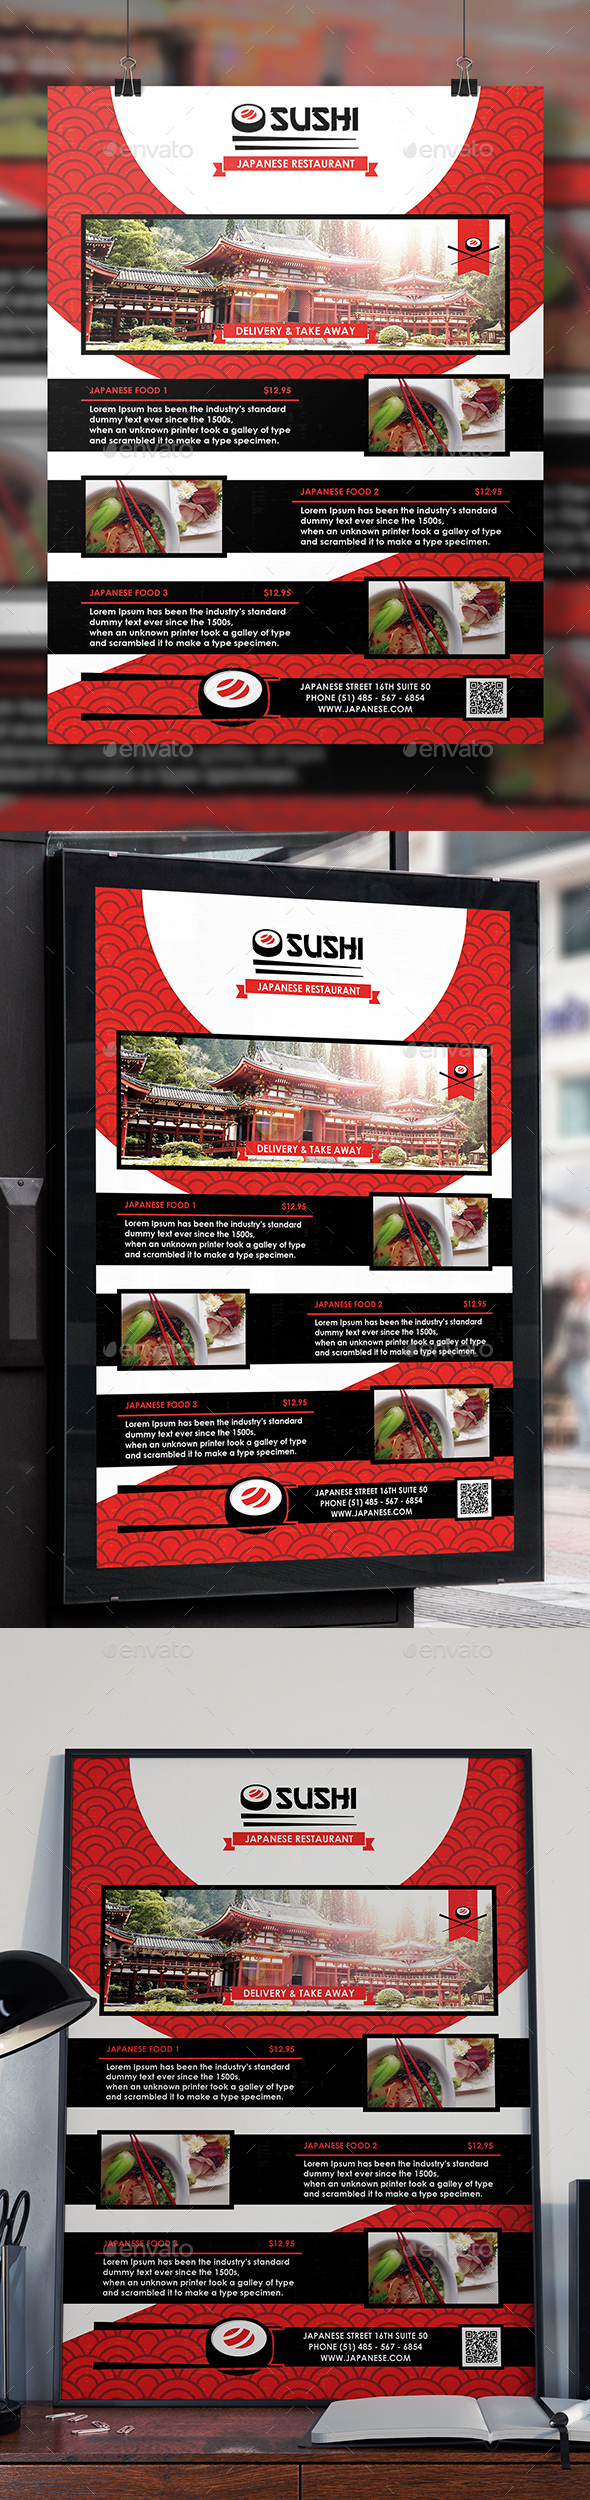 Asian Restaurant Flyer Template - Restaurant Flyers